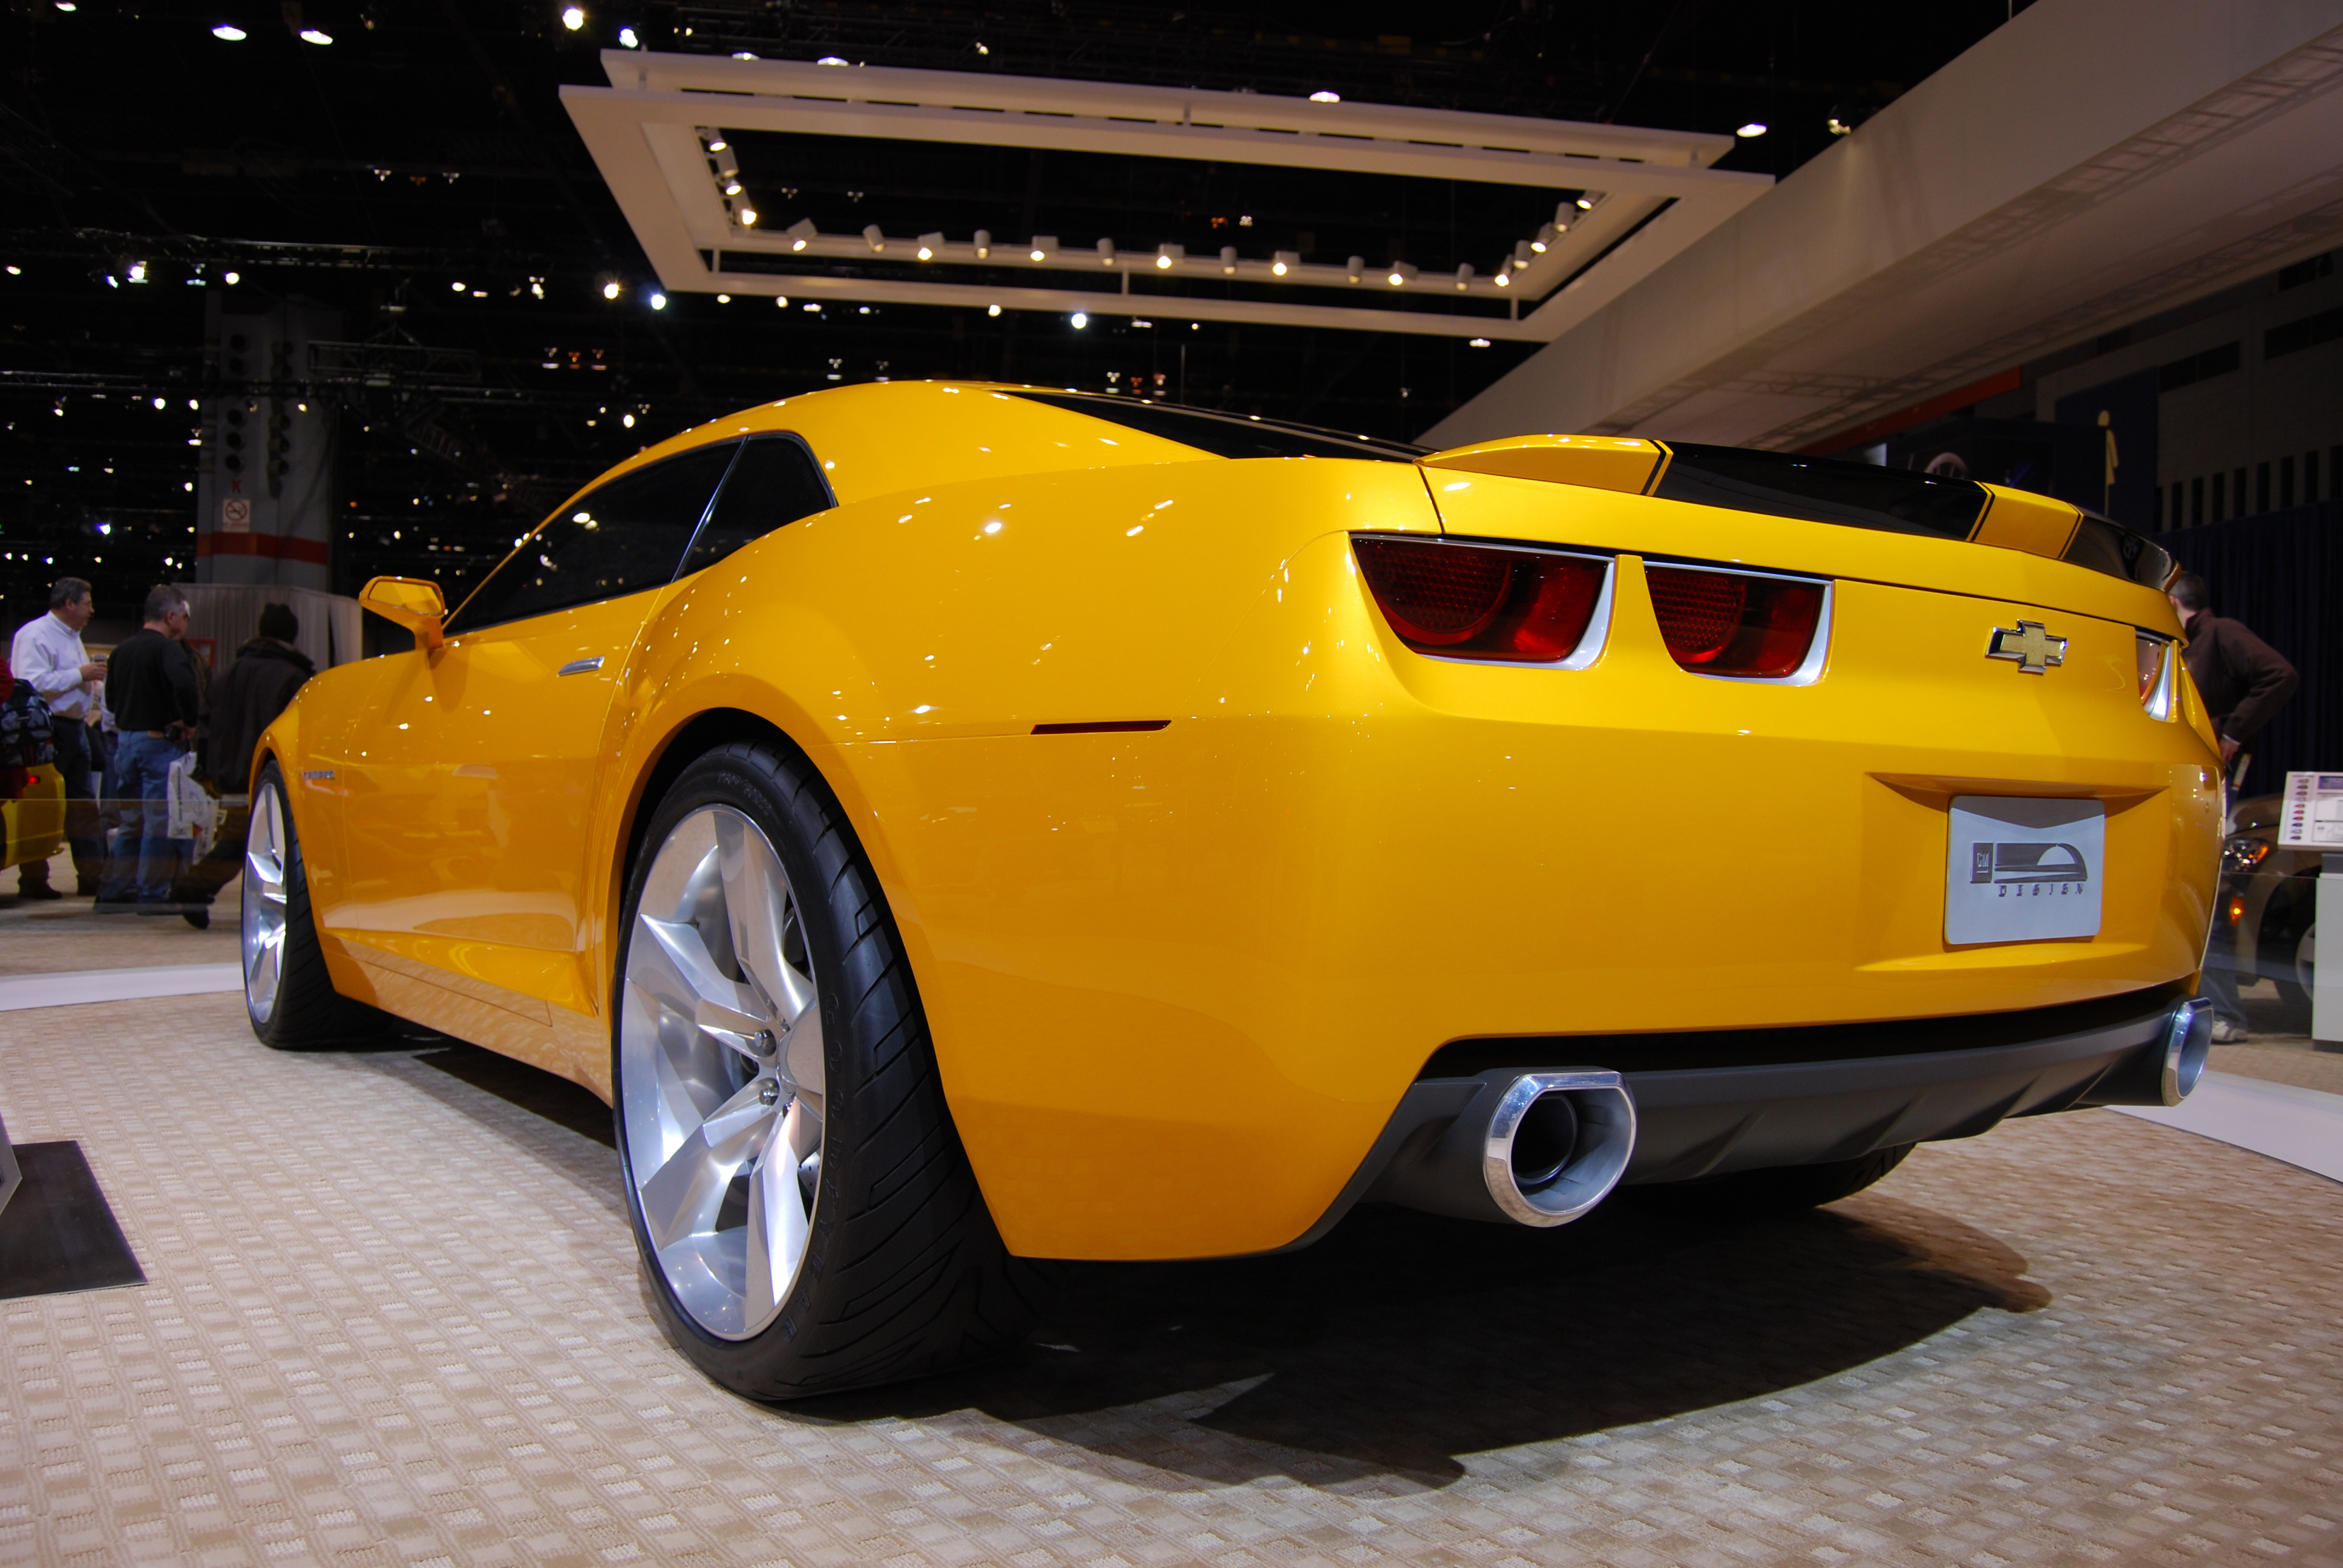 2008 chevrolet corvette chevy pictures photos gallery - Chevrolet Camaro 2009 Present 5th Generation